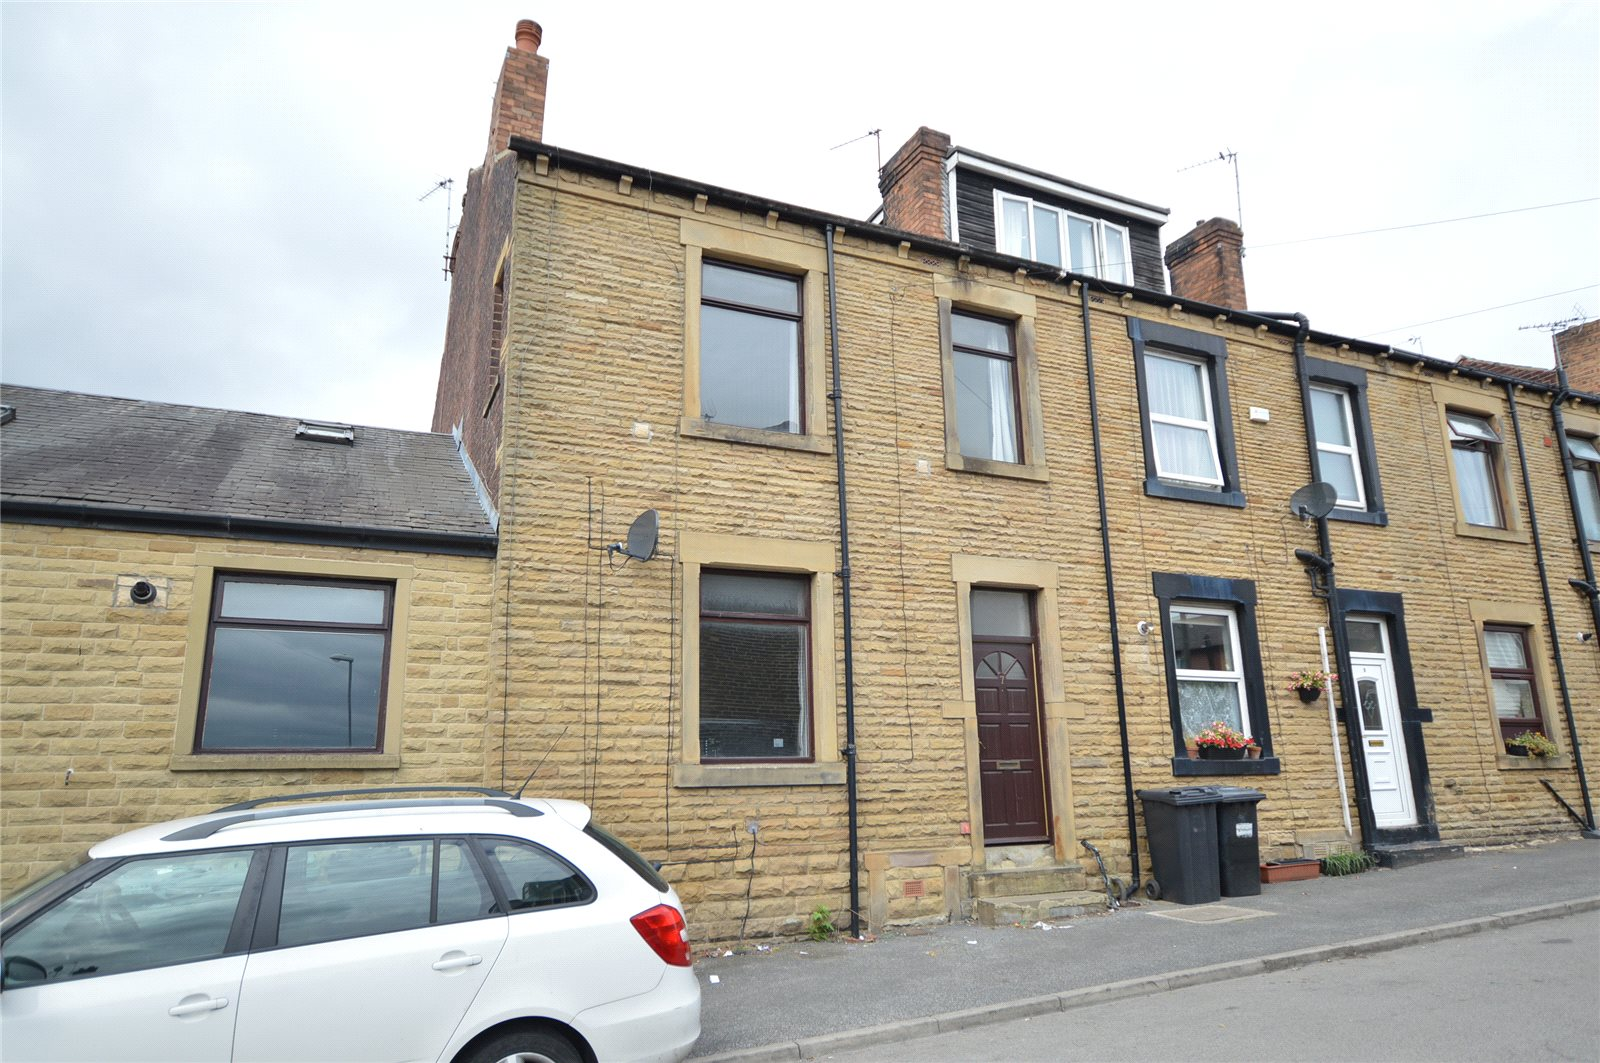 Property for sale in Morley, terraced house exterior